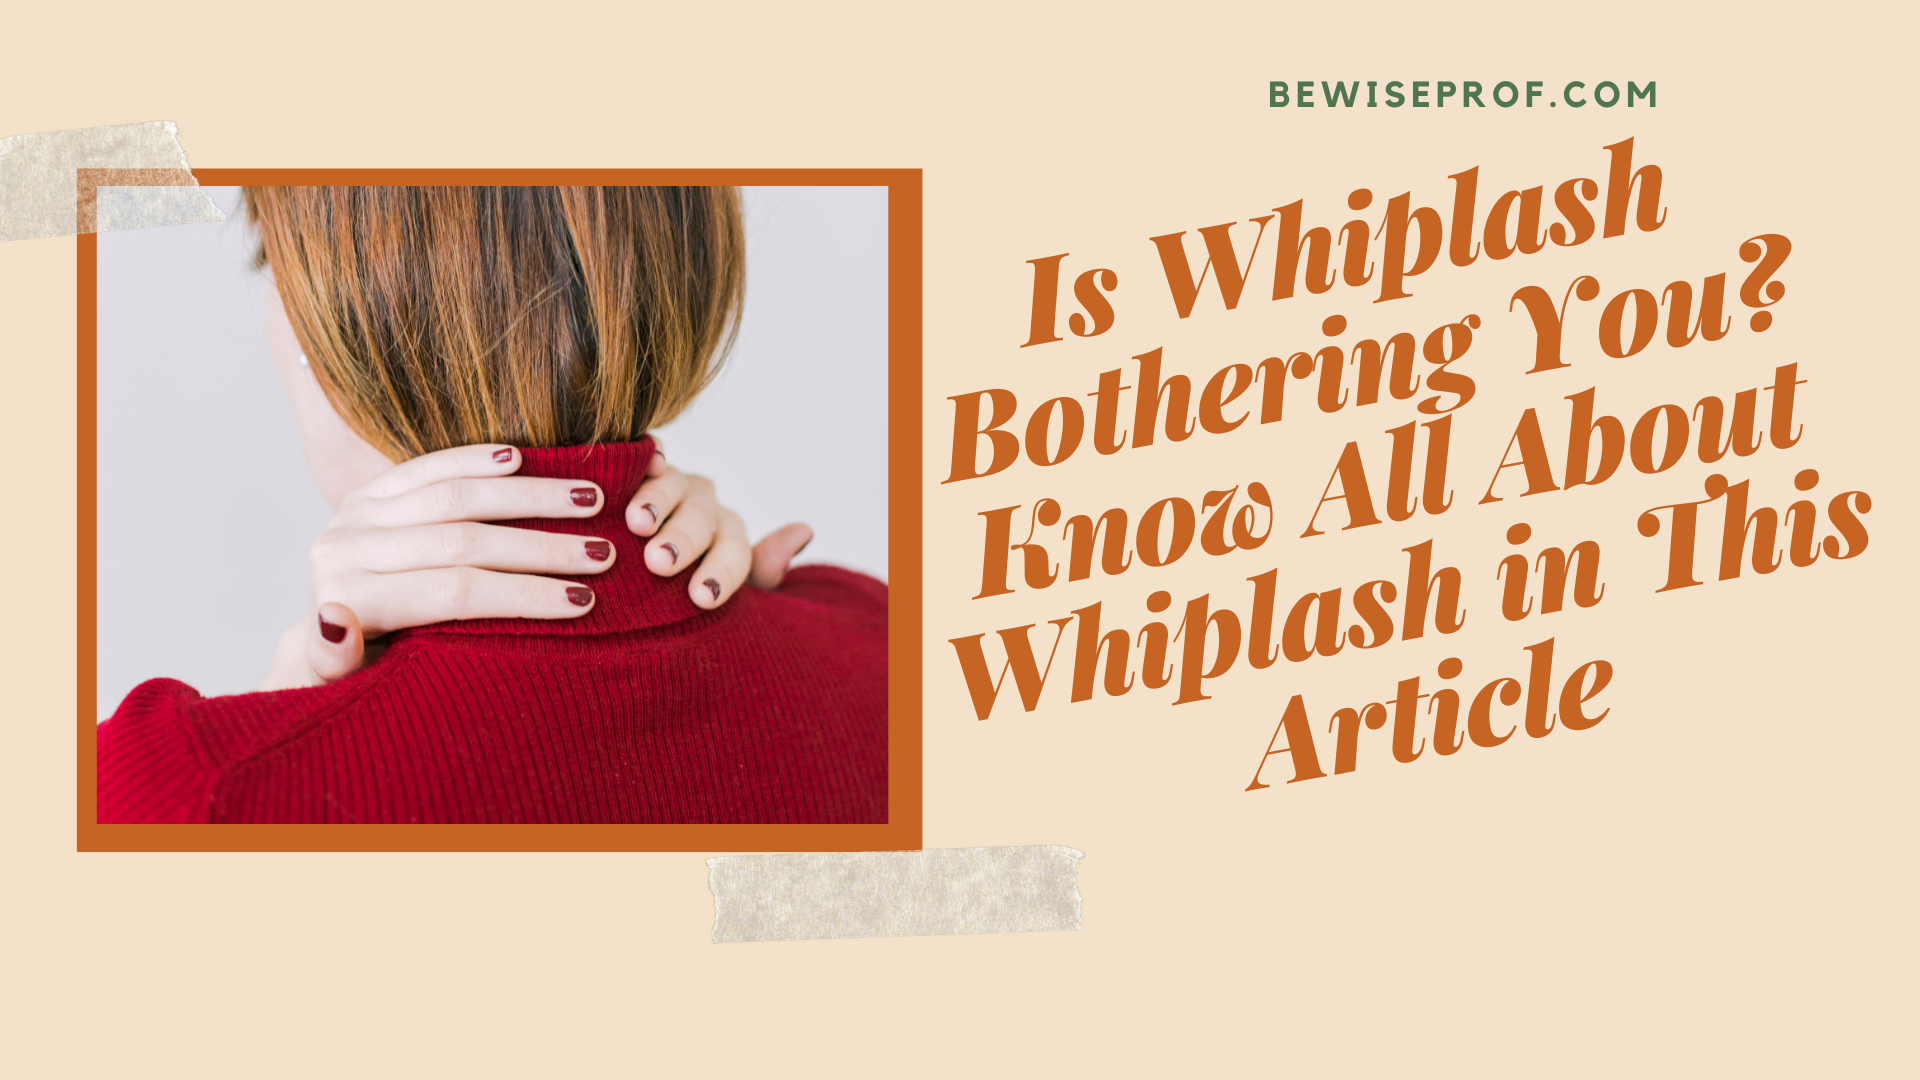 Photo of Is Whiplash Bothering You? Know All About Whiplash in This Article